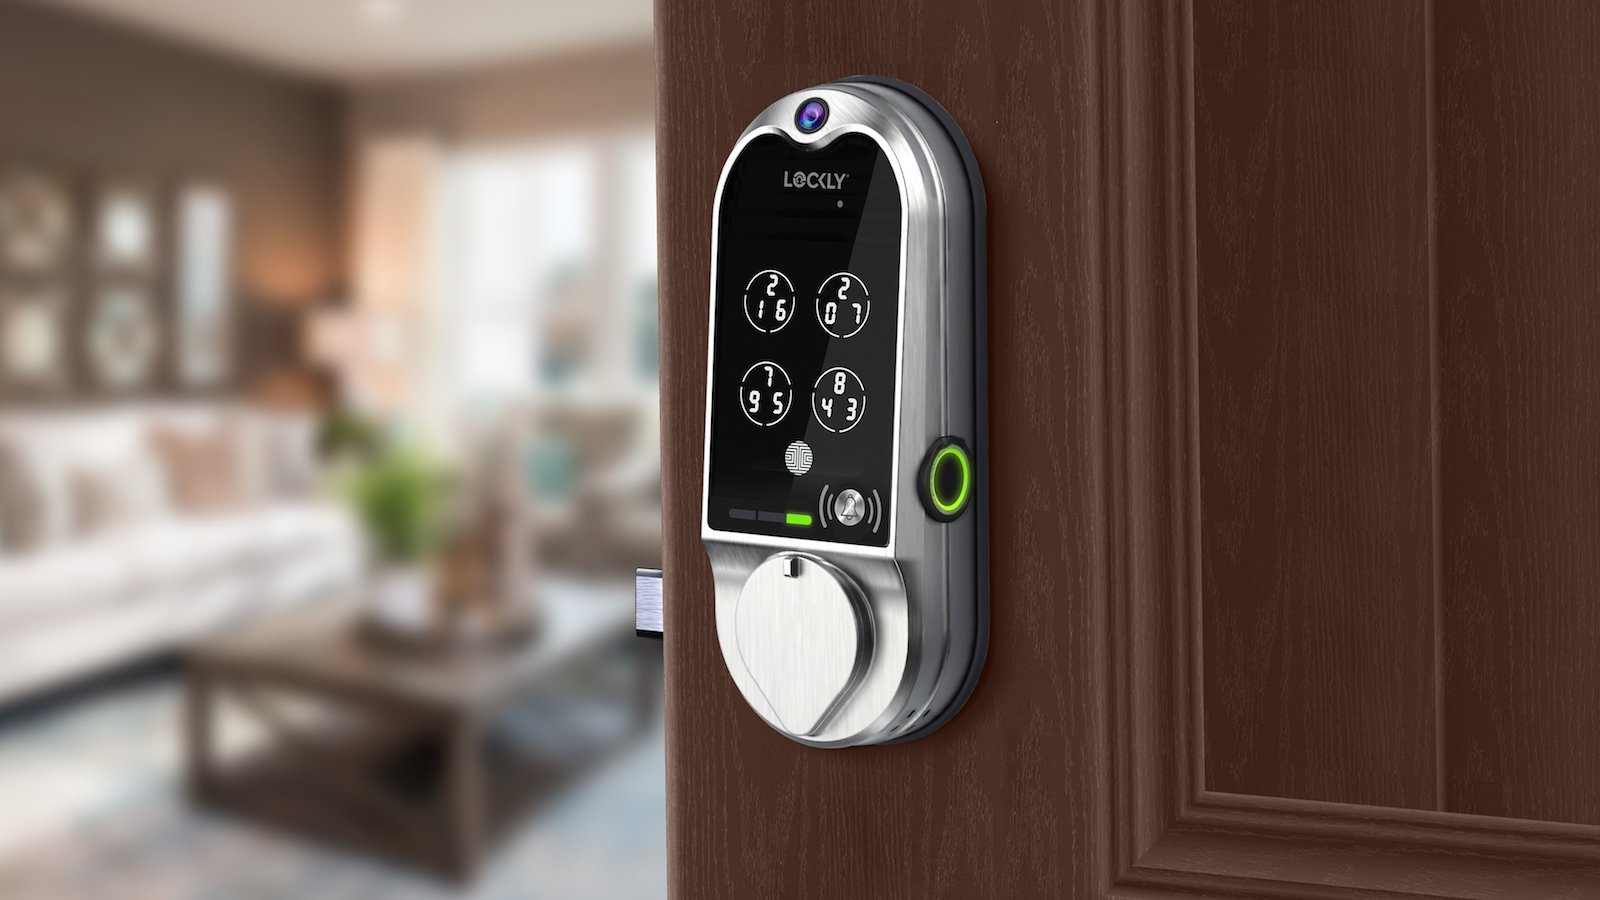 LOCKLY Vision doorbell camera smart lock comes with five secure ways to unlock your door